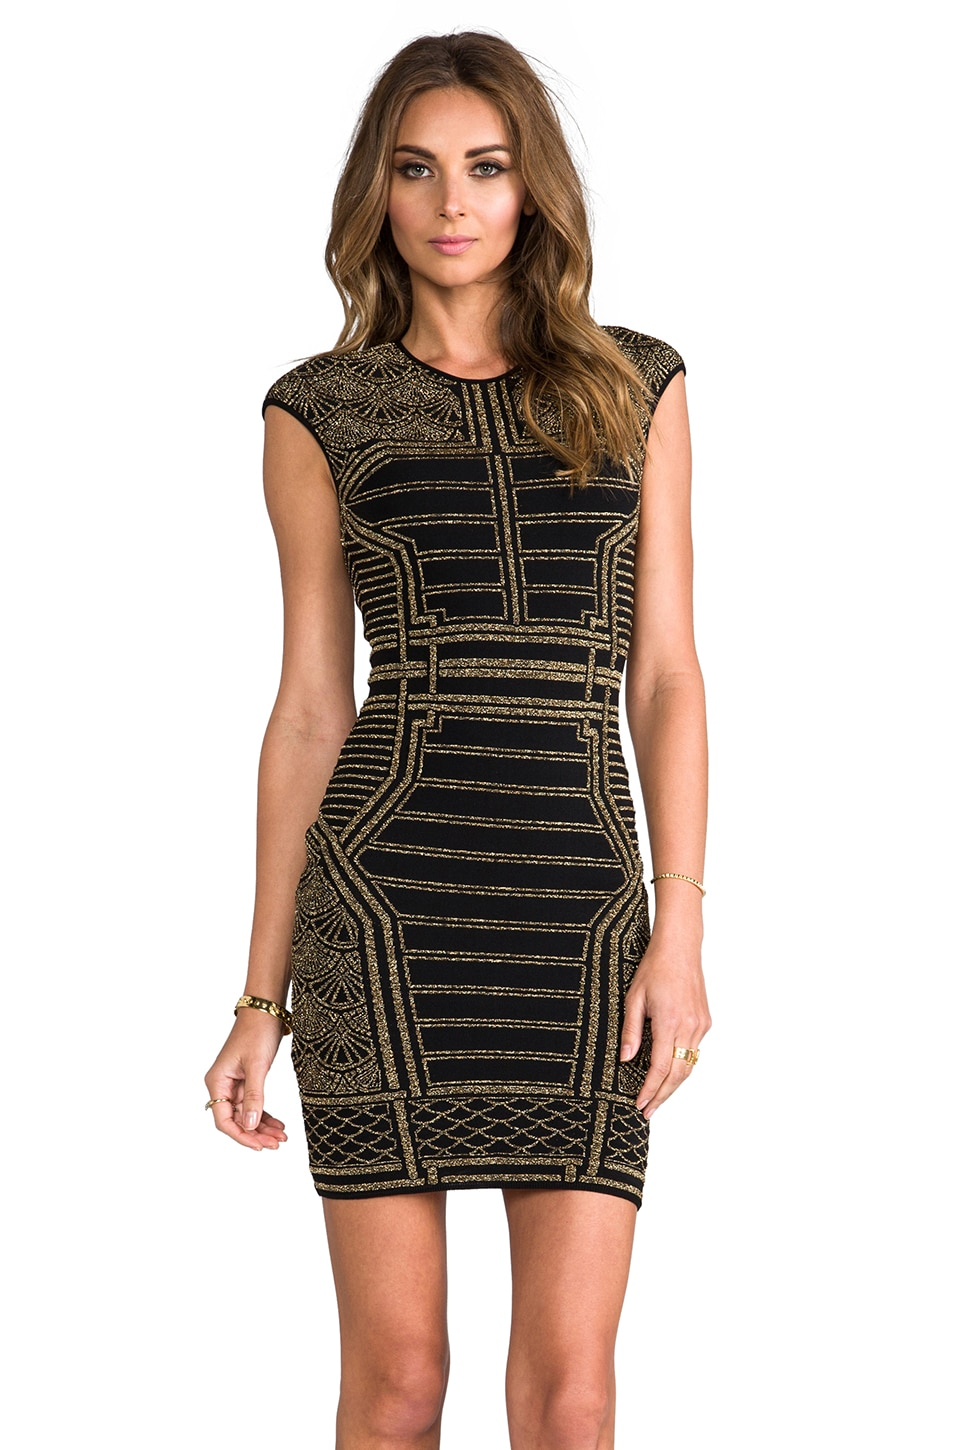 RVN Oriental 3D Lurex Jacquard Dress in Gold/Black